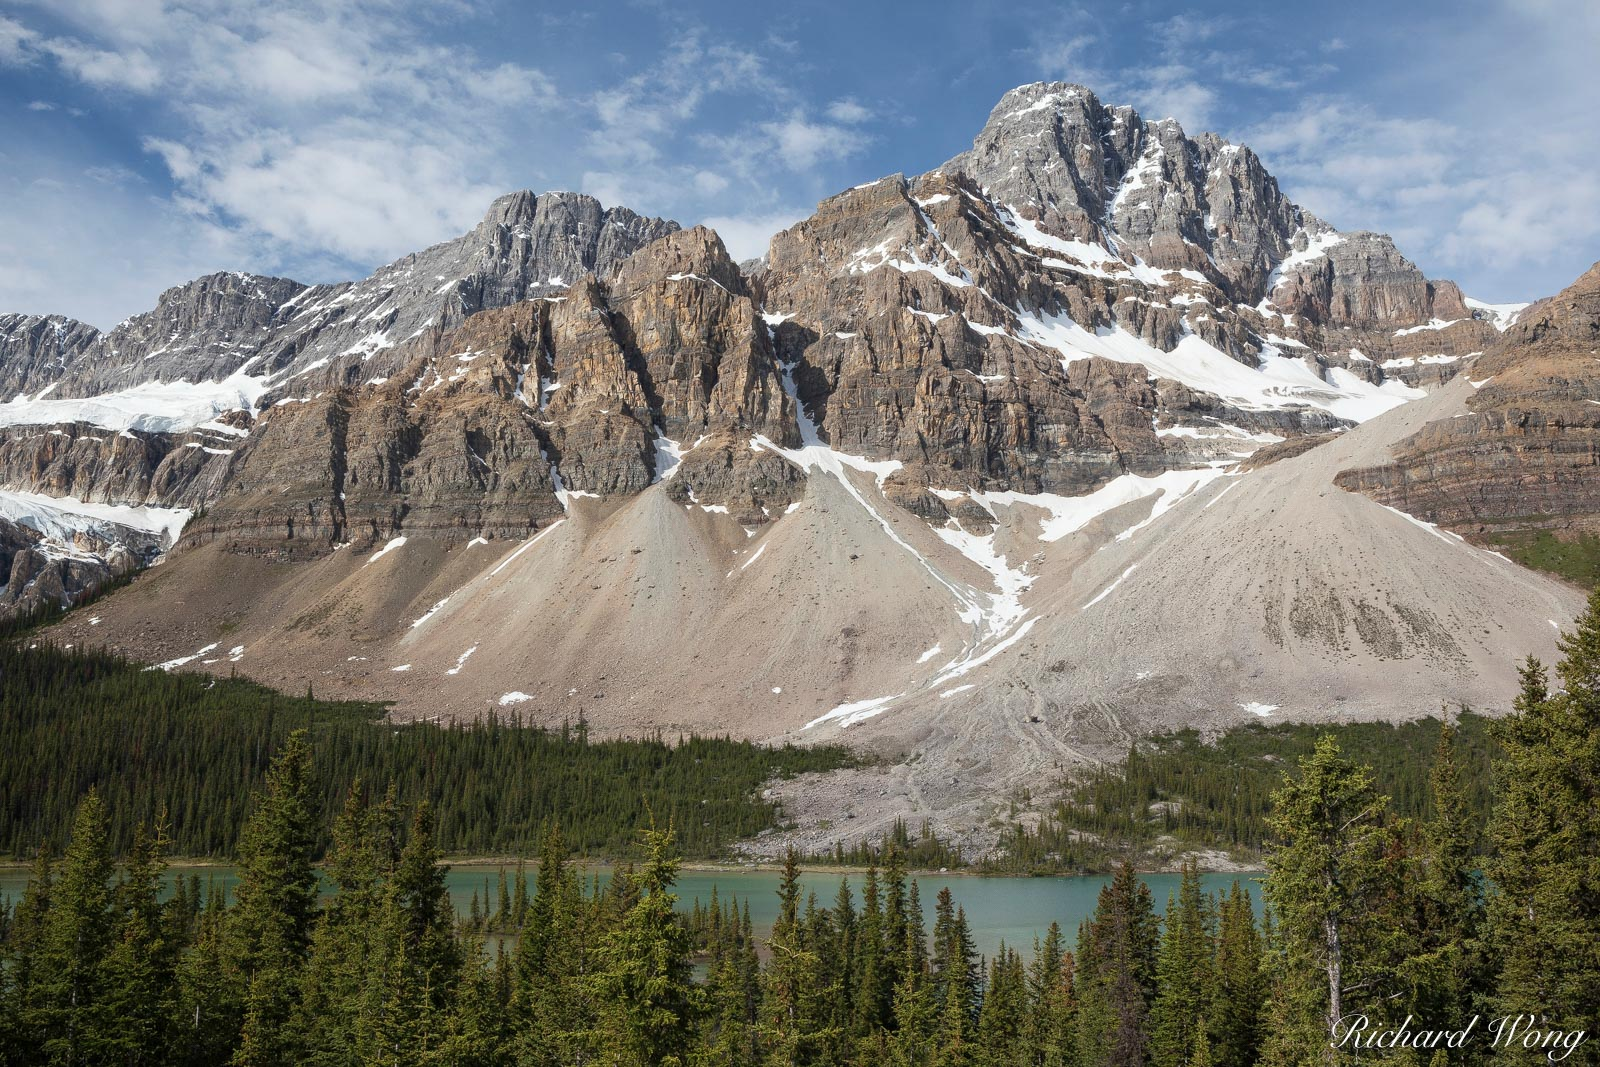 a.b, alberta, banff national park, bow lake, canada, canadian rockies, crowfoot glacier, crowfoot mountain, forest, freshwater, glaciers, ice, icefields parkway, landscape, mountains, nature, north am, photo